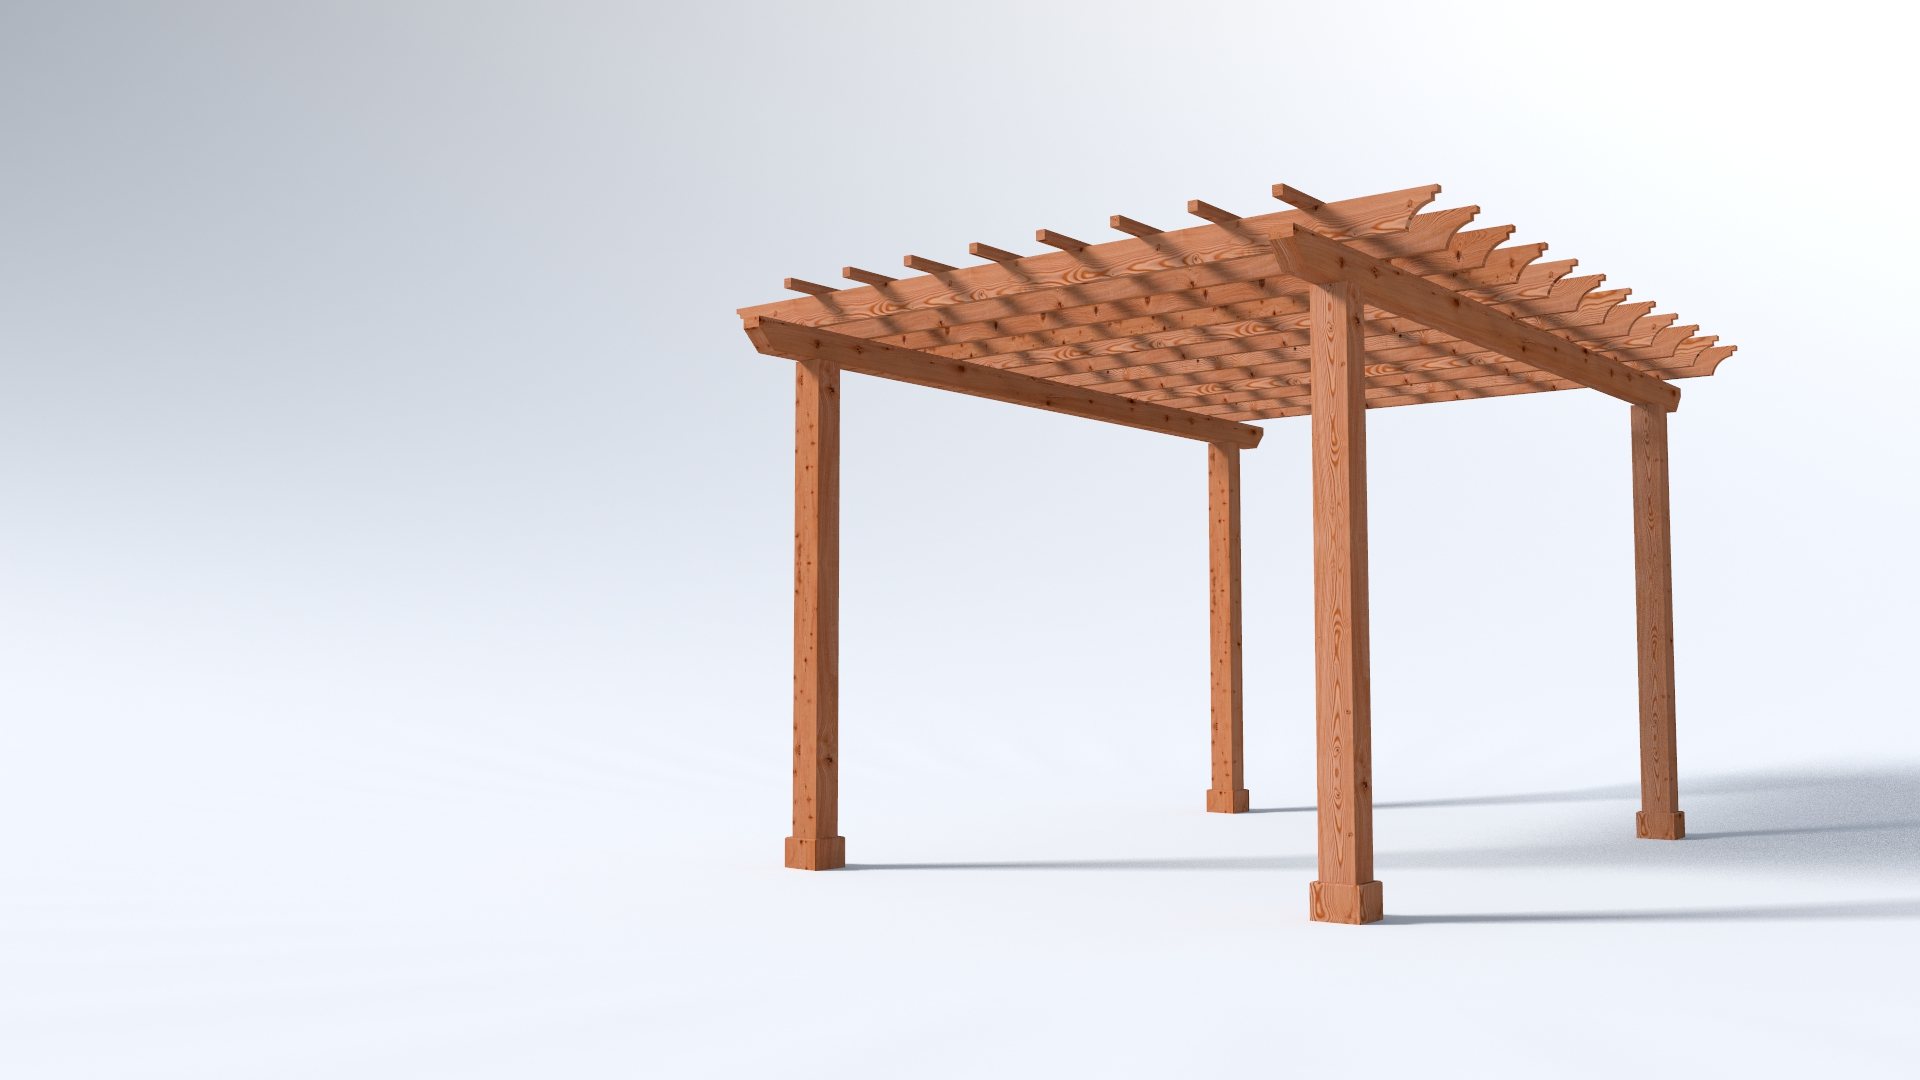 Main 1 - 12x16 Garden Pergola Kits - 4x Beams with 6x6 Posts - Sequoia Building Supply